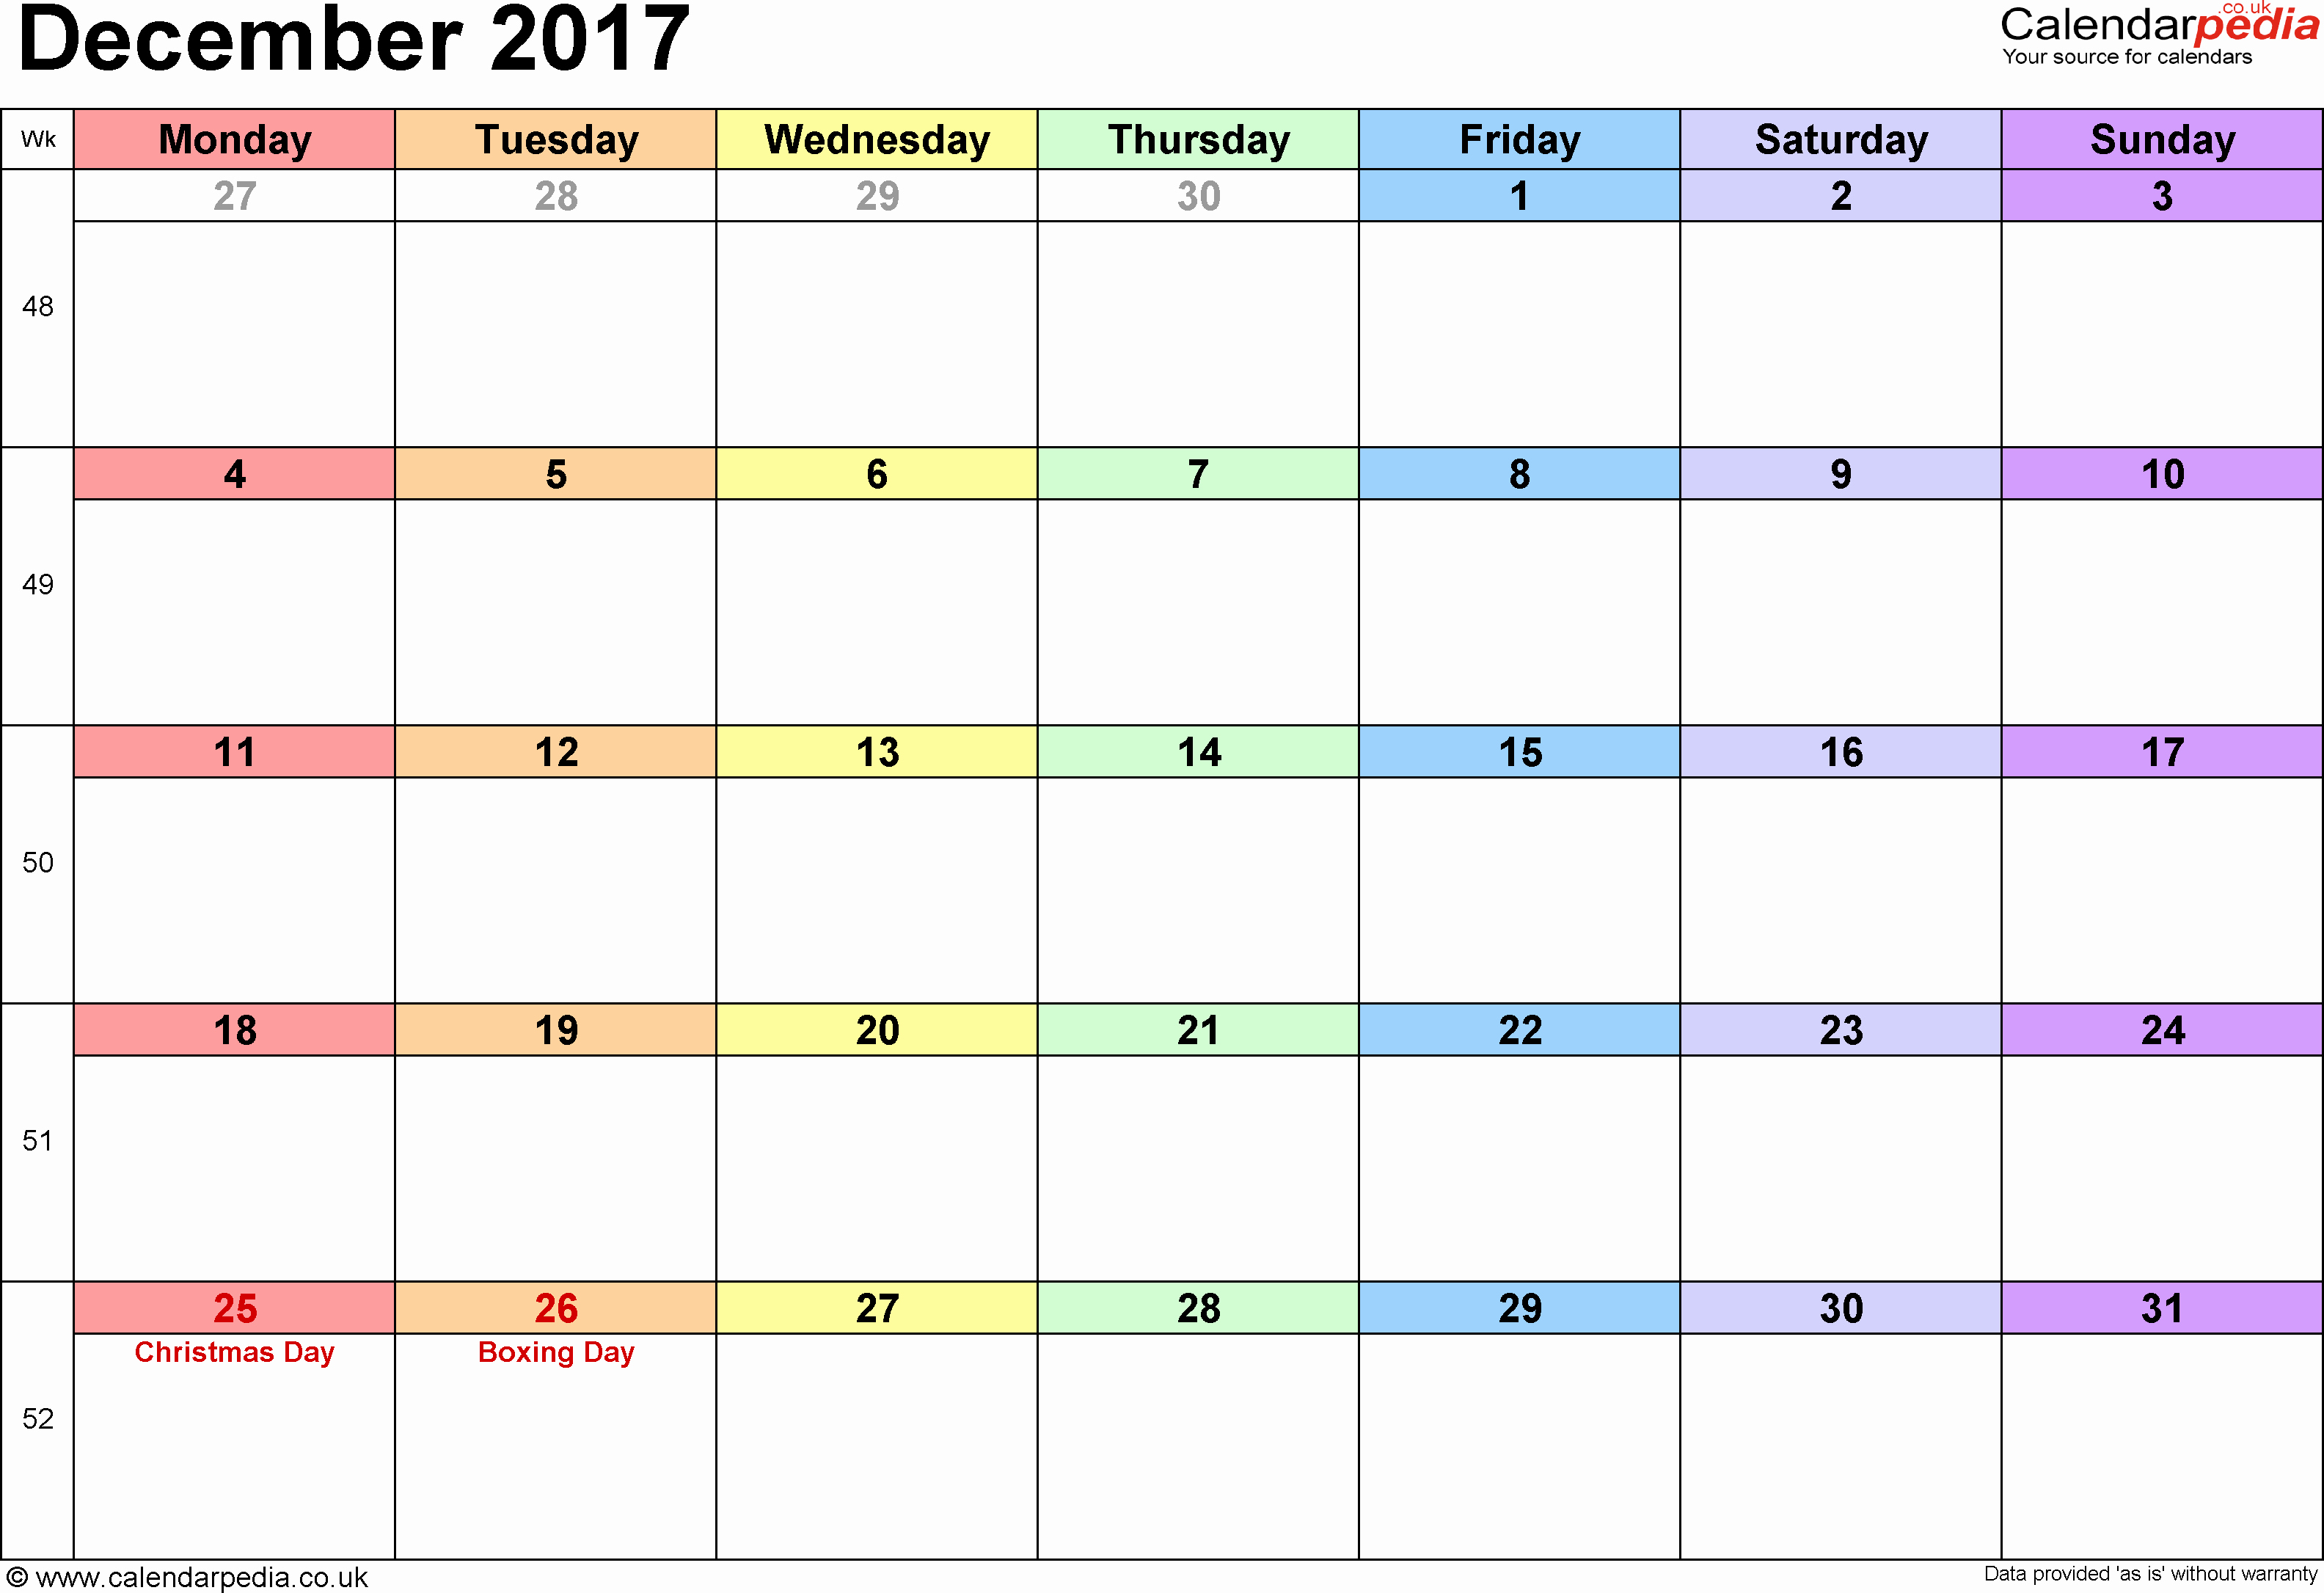 Monday to Sunday Calendar 2017 Awesome December 2017 Calendar Monday Sunday